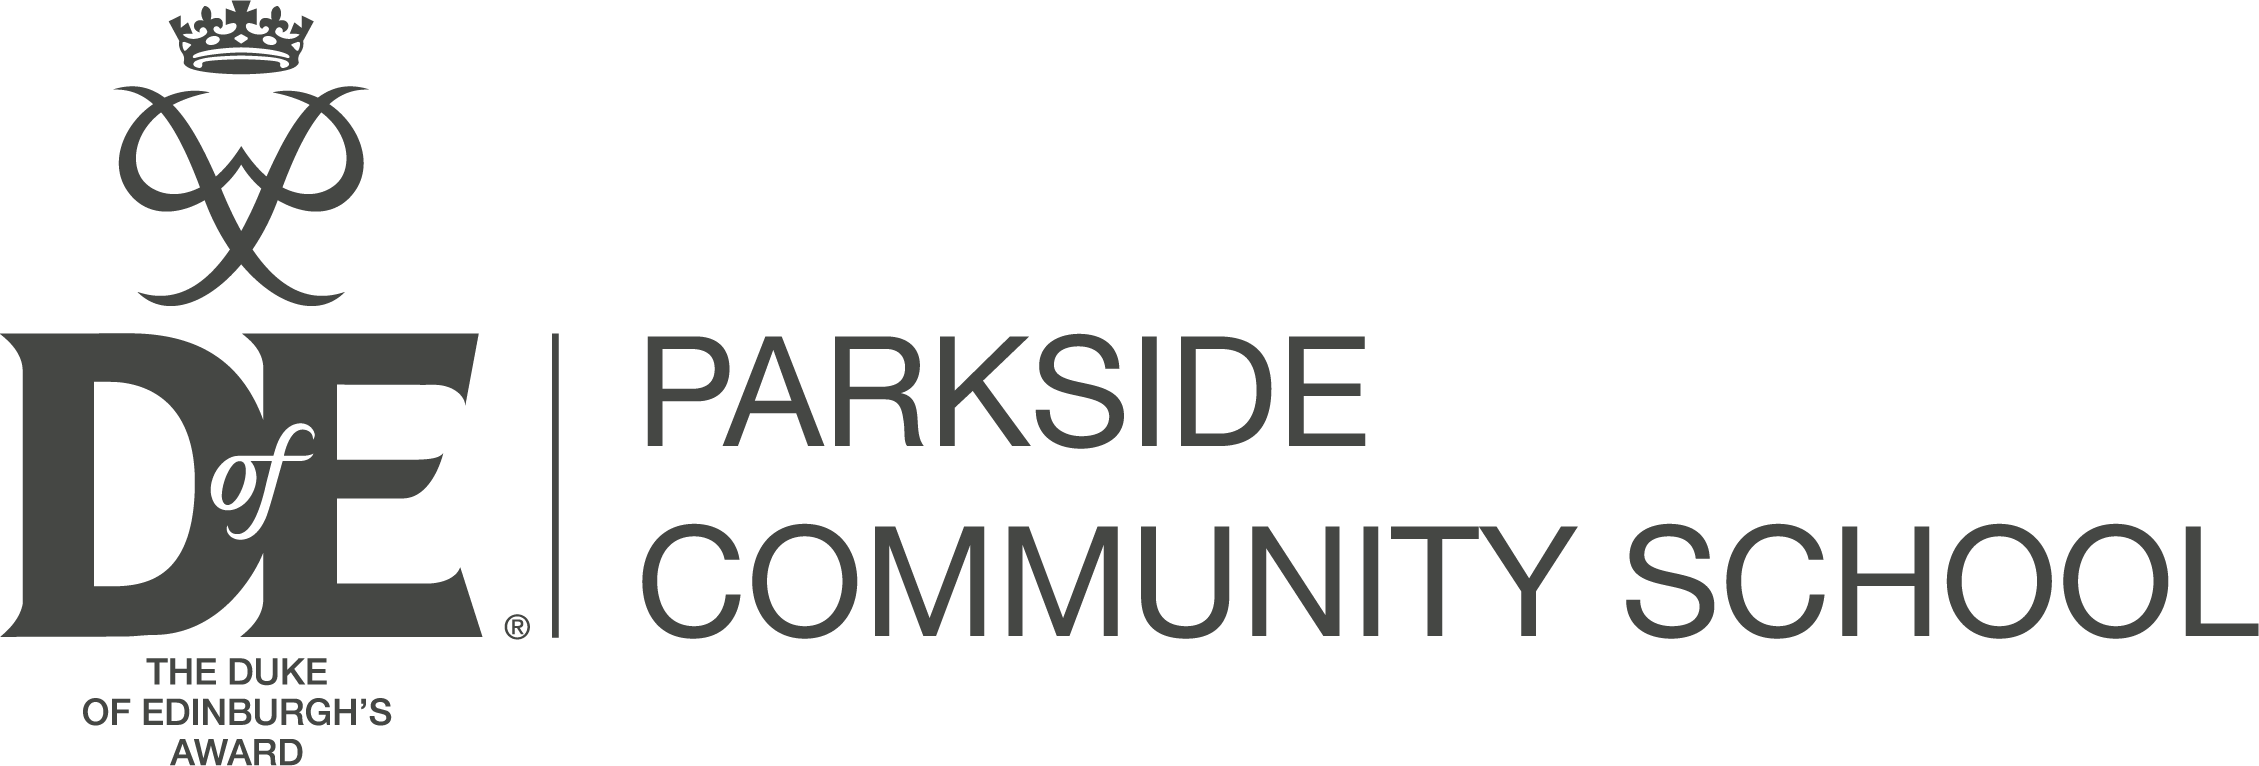 DofE logo Parkside Community School